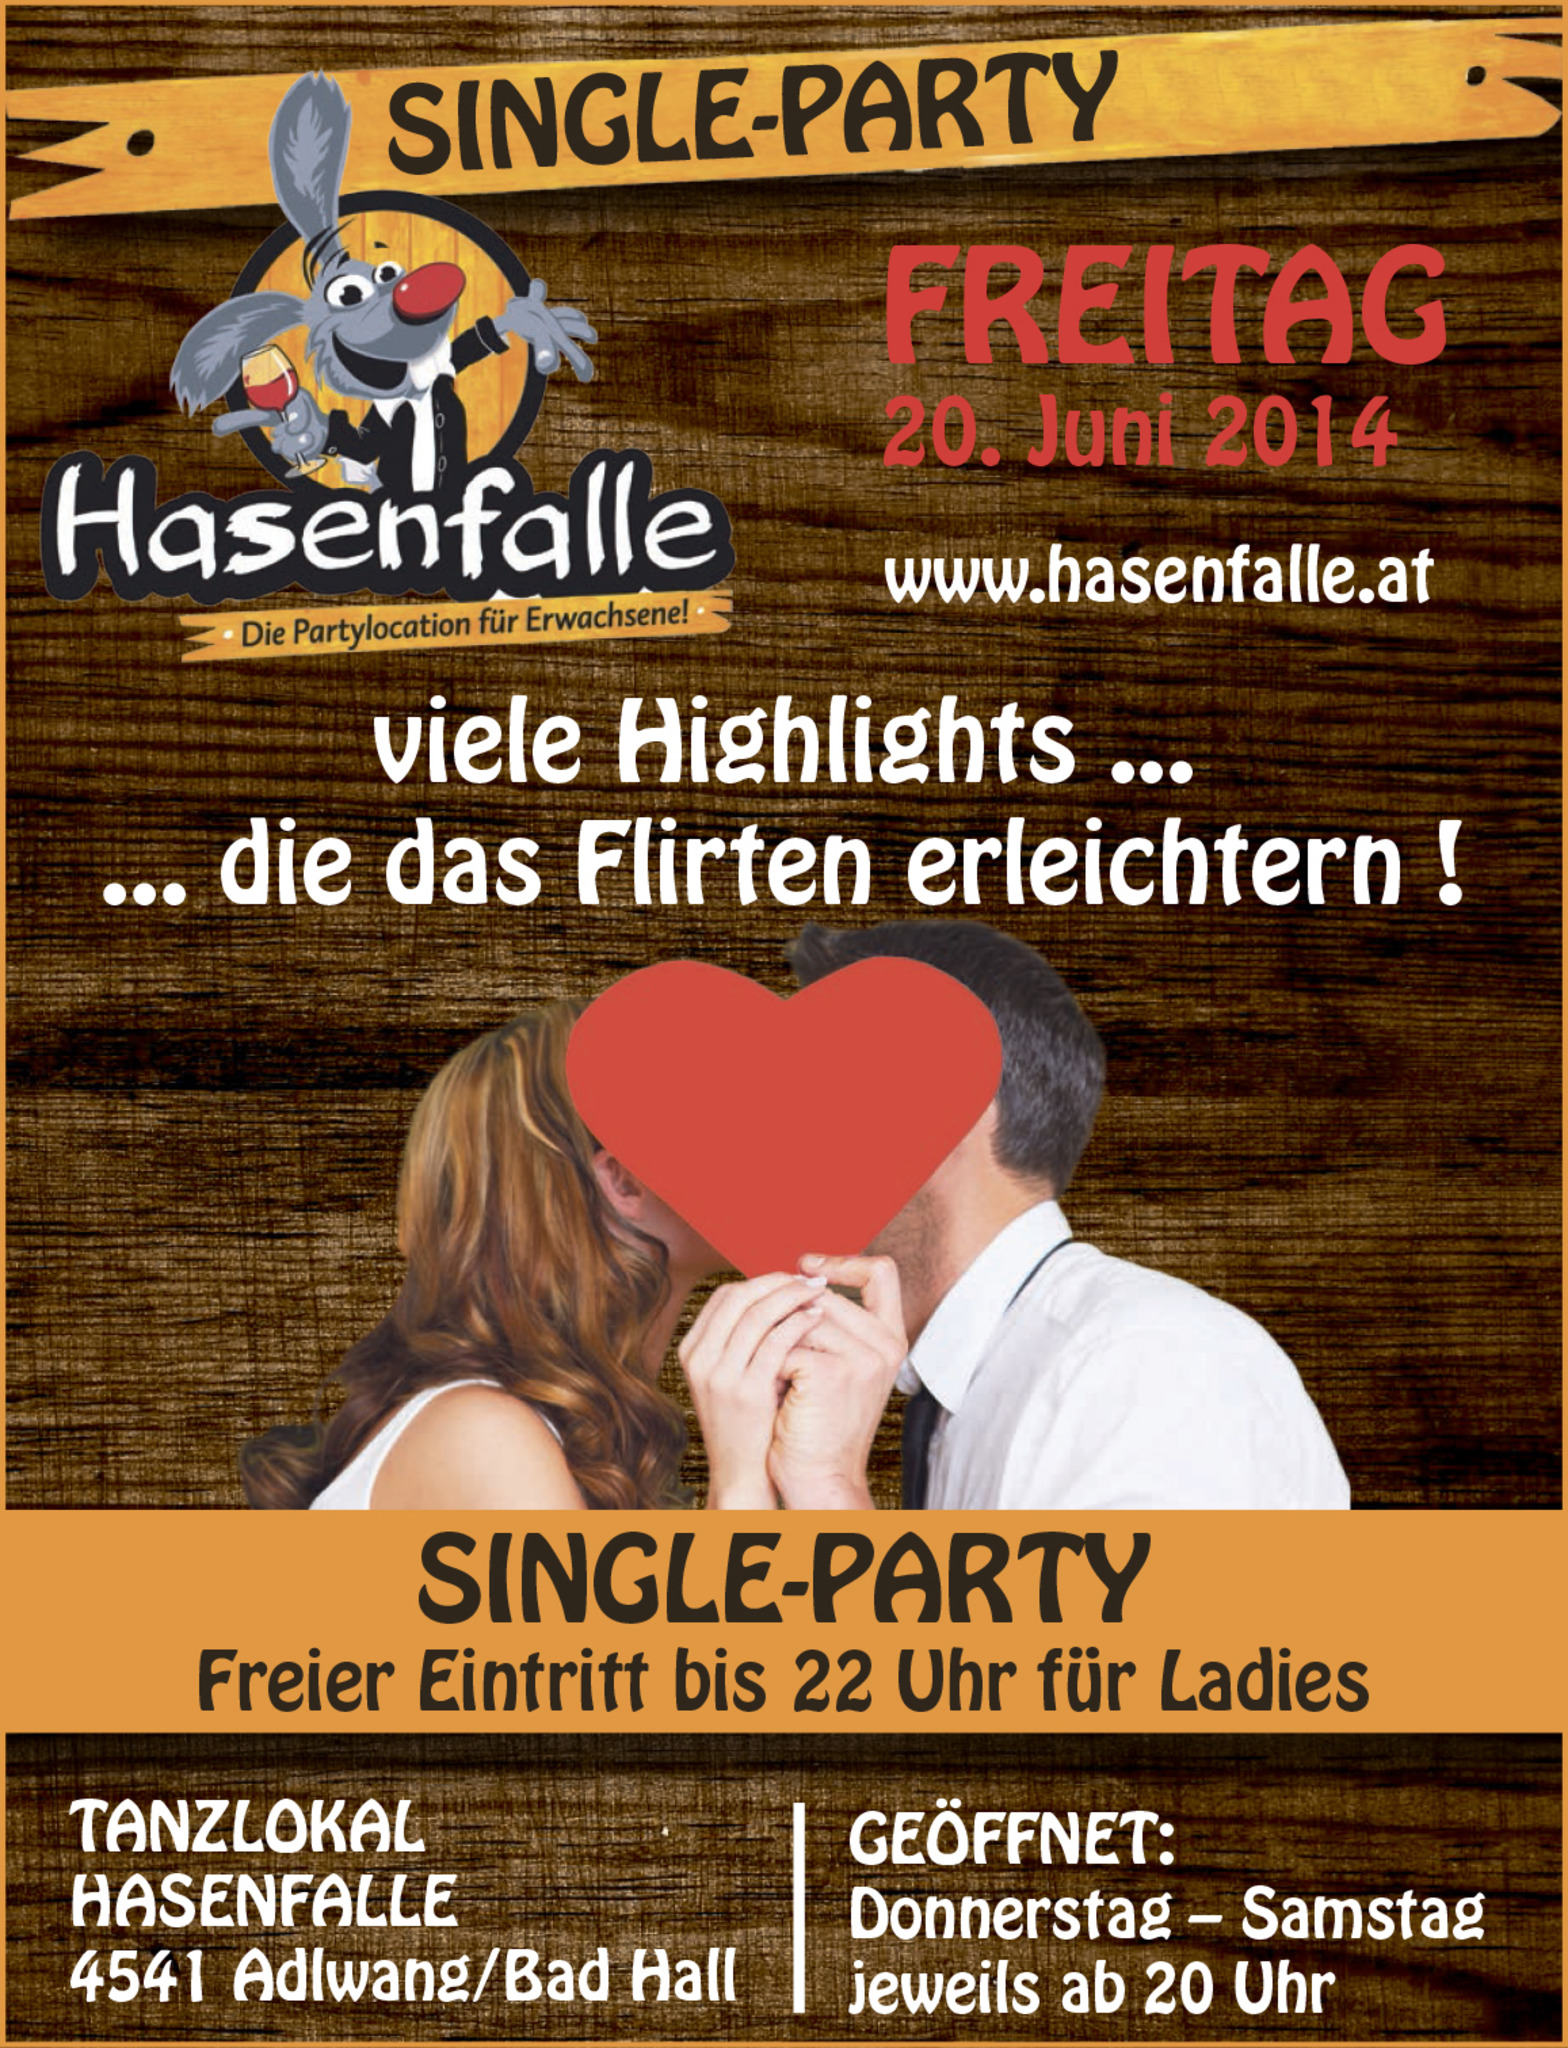 Online Chat & Dating Grnburg | Lerne Mnner & Frauen in